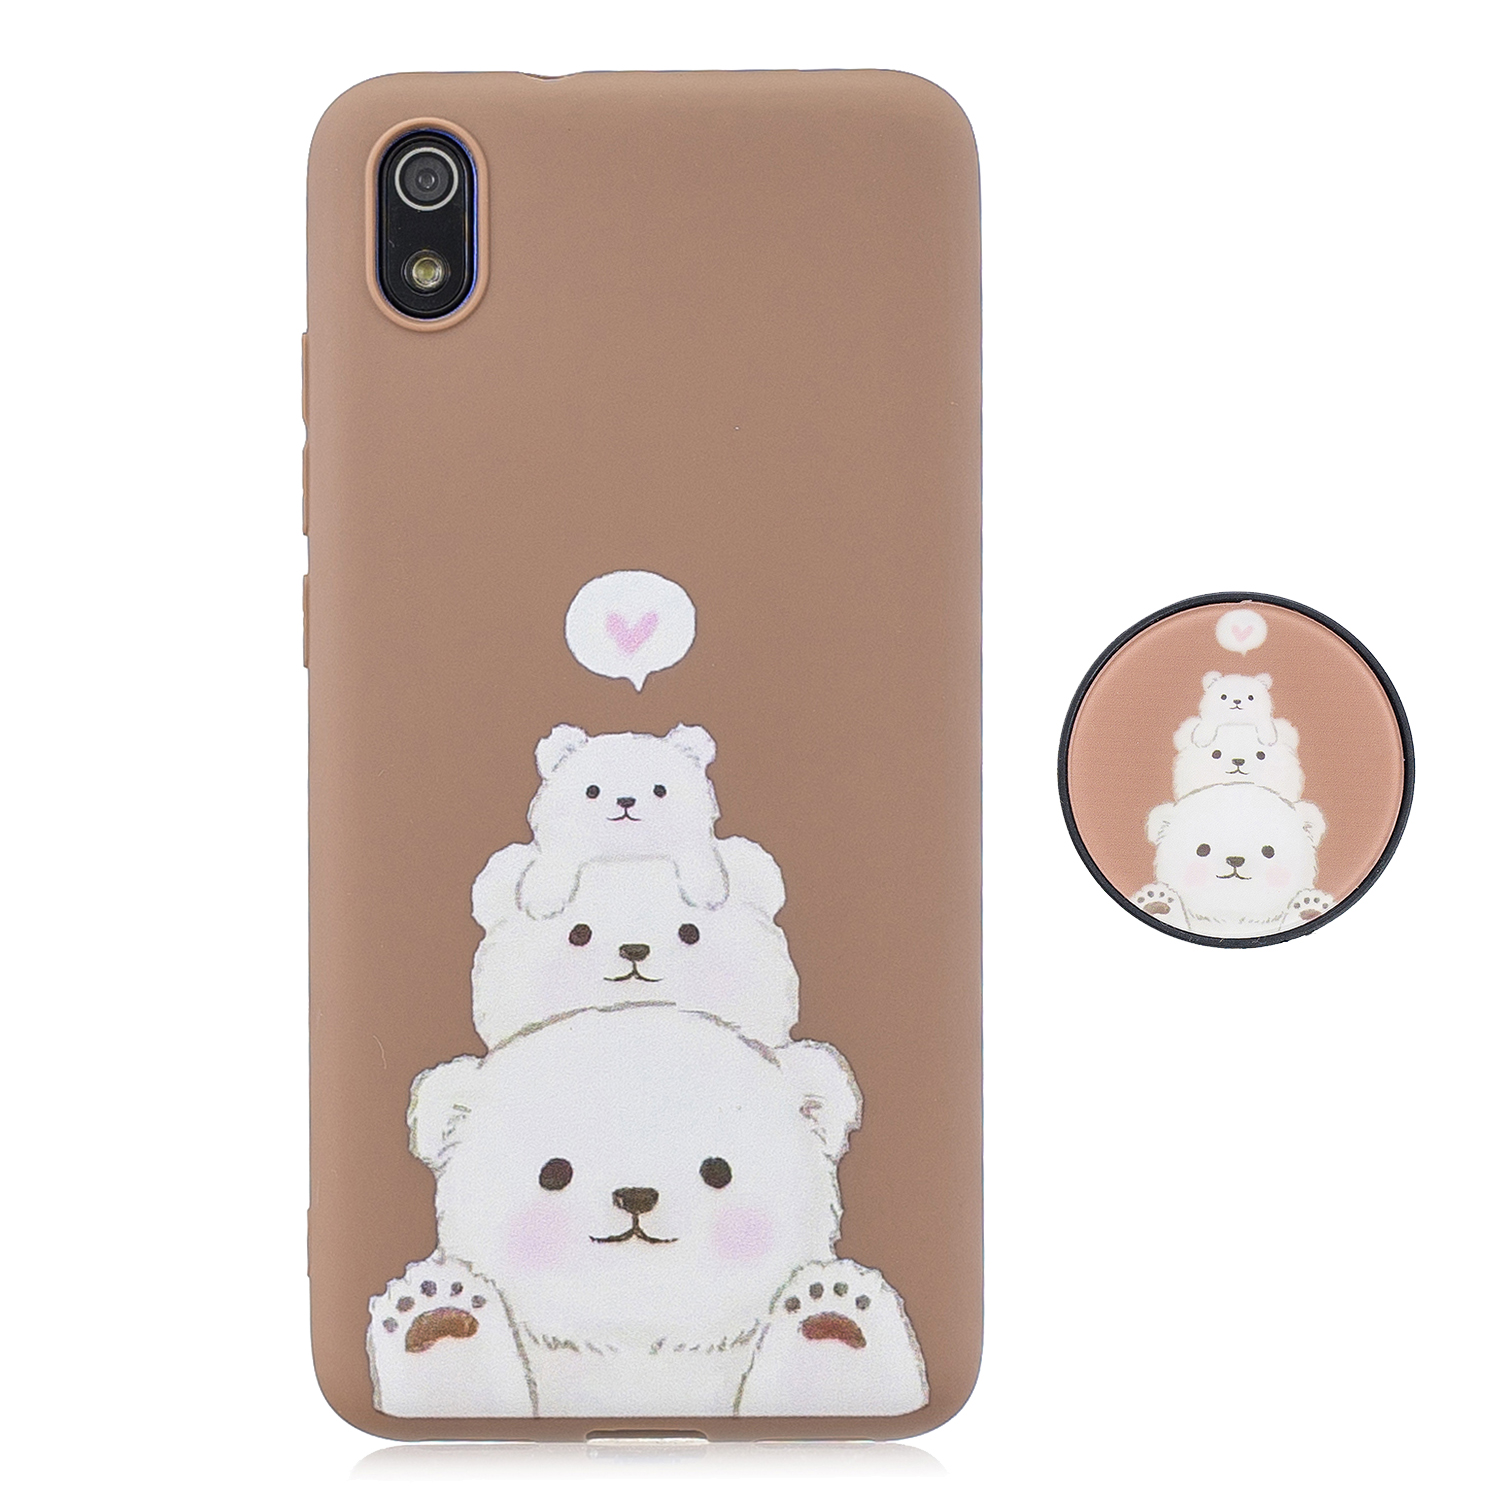 For Redmi 7A Soft TPU Full Cover Phone Case Protector Back Cover Phone Case with Matched Pattern Adjustable Bracket 3